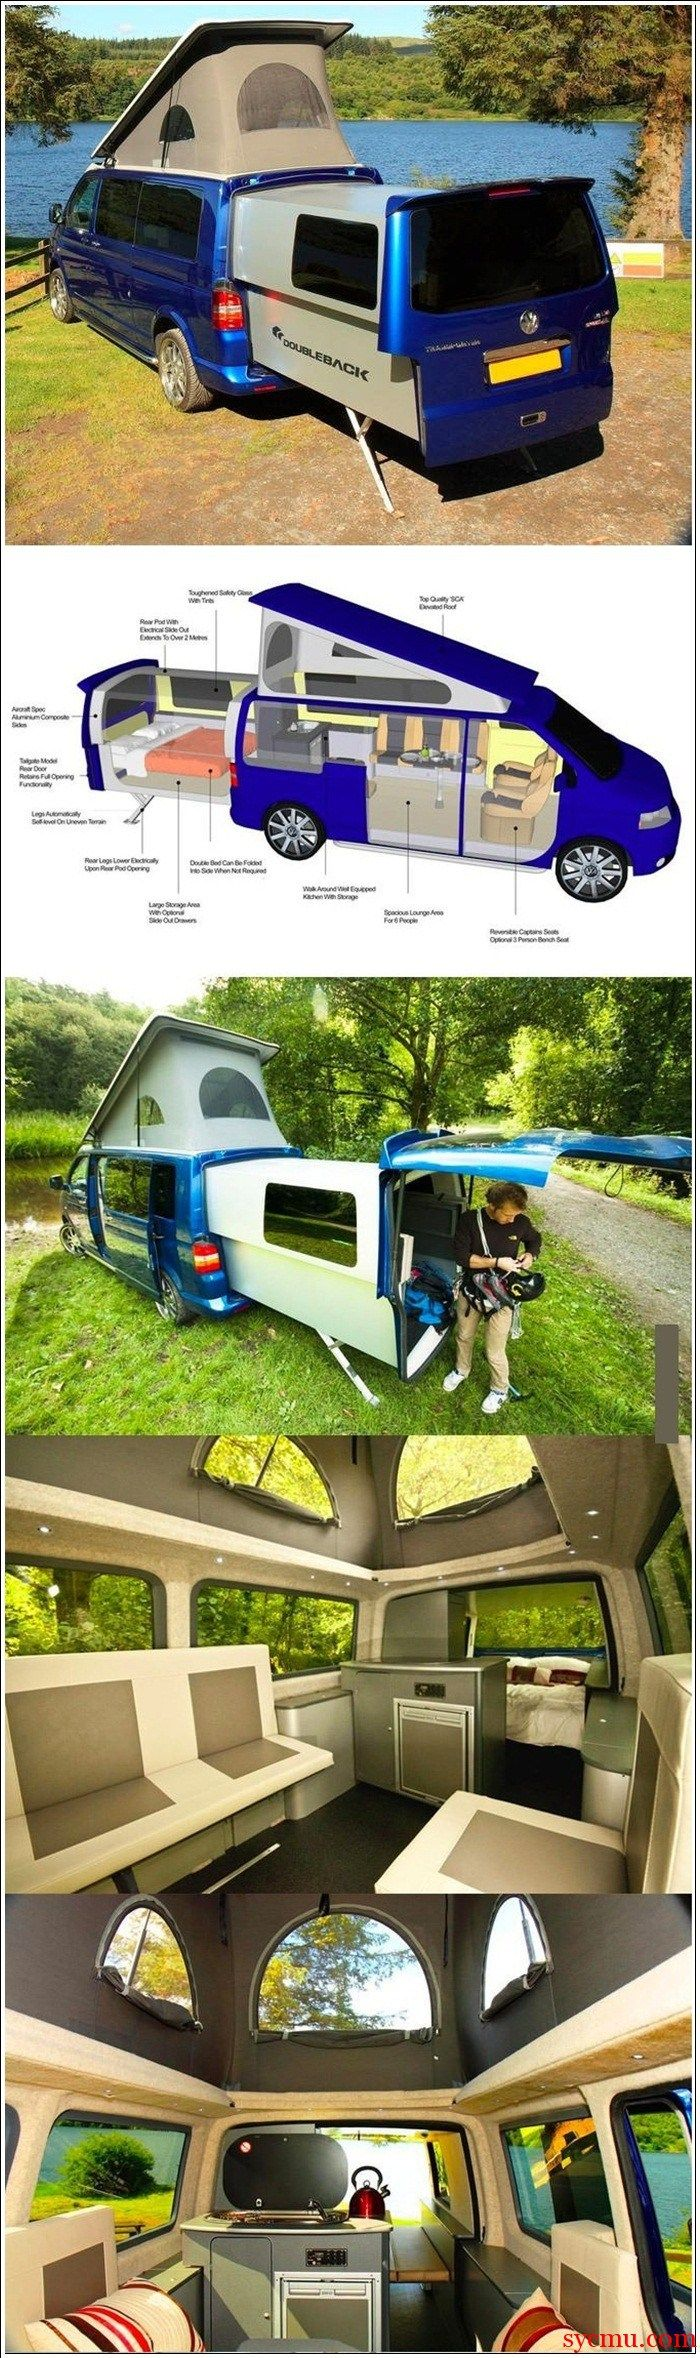 RV Mini Van turns into house